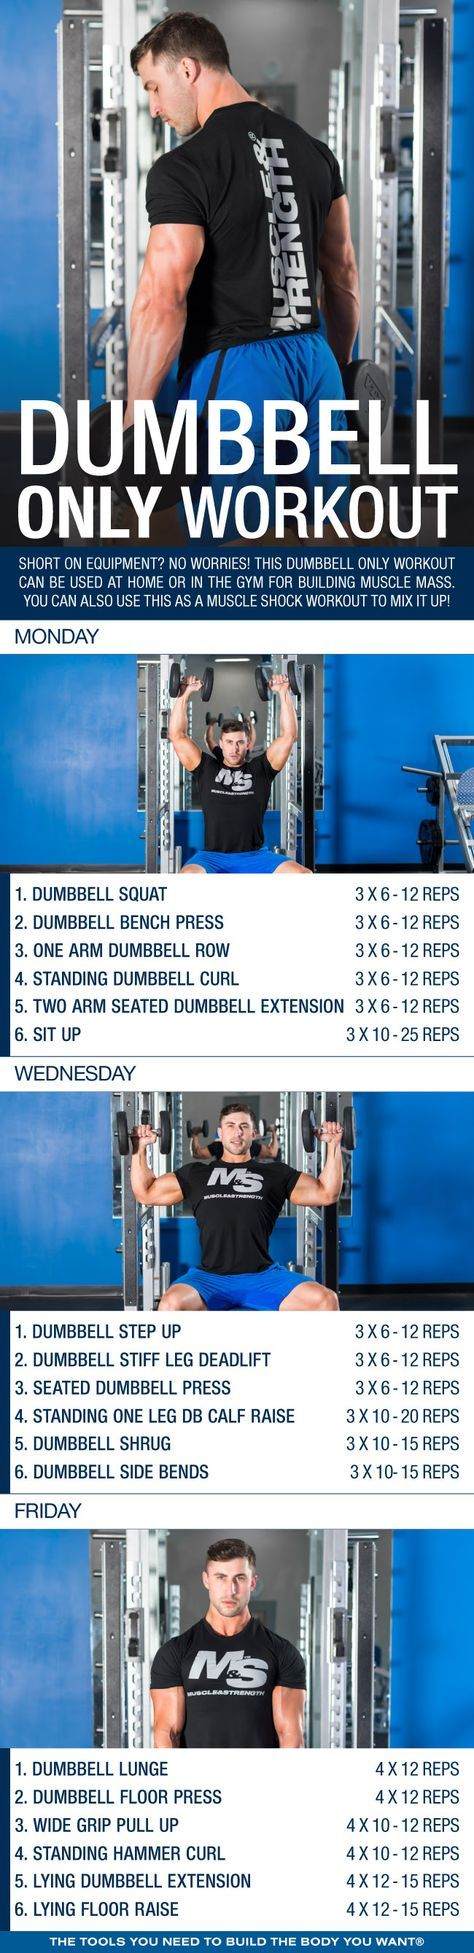 Short on equipment? No worries! This dumbbell only workout can be used at home or in the gym for building muscle mass. You can also use this as a muscle shock workout to mix things up.